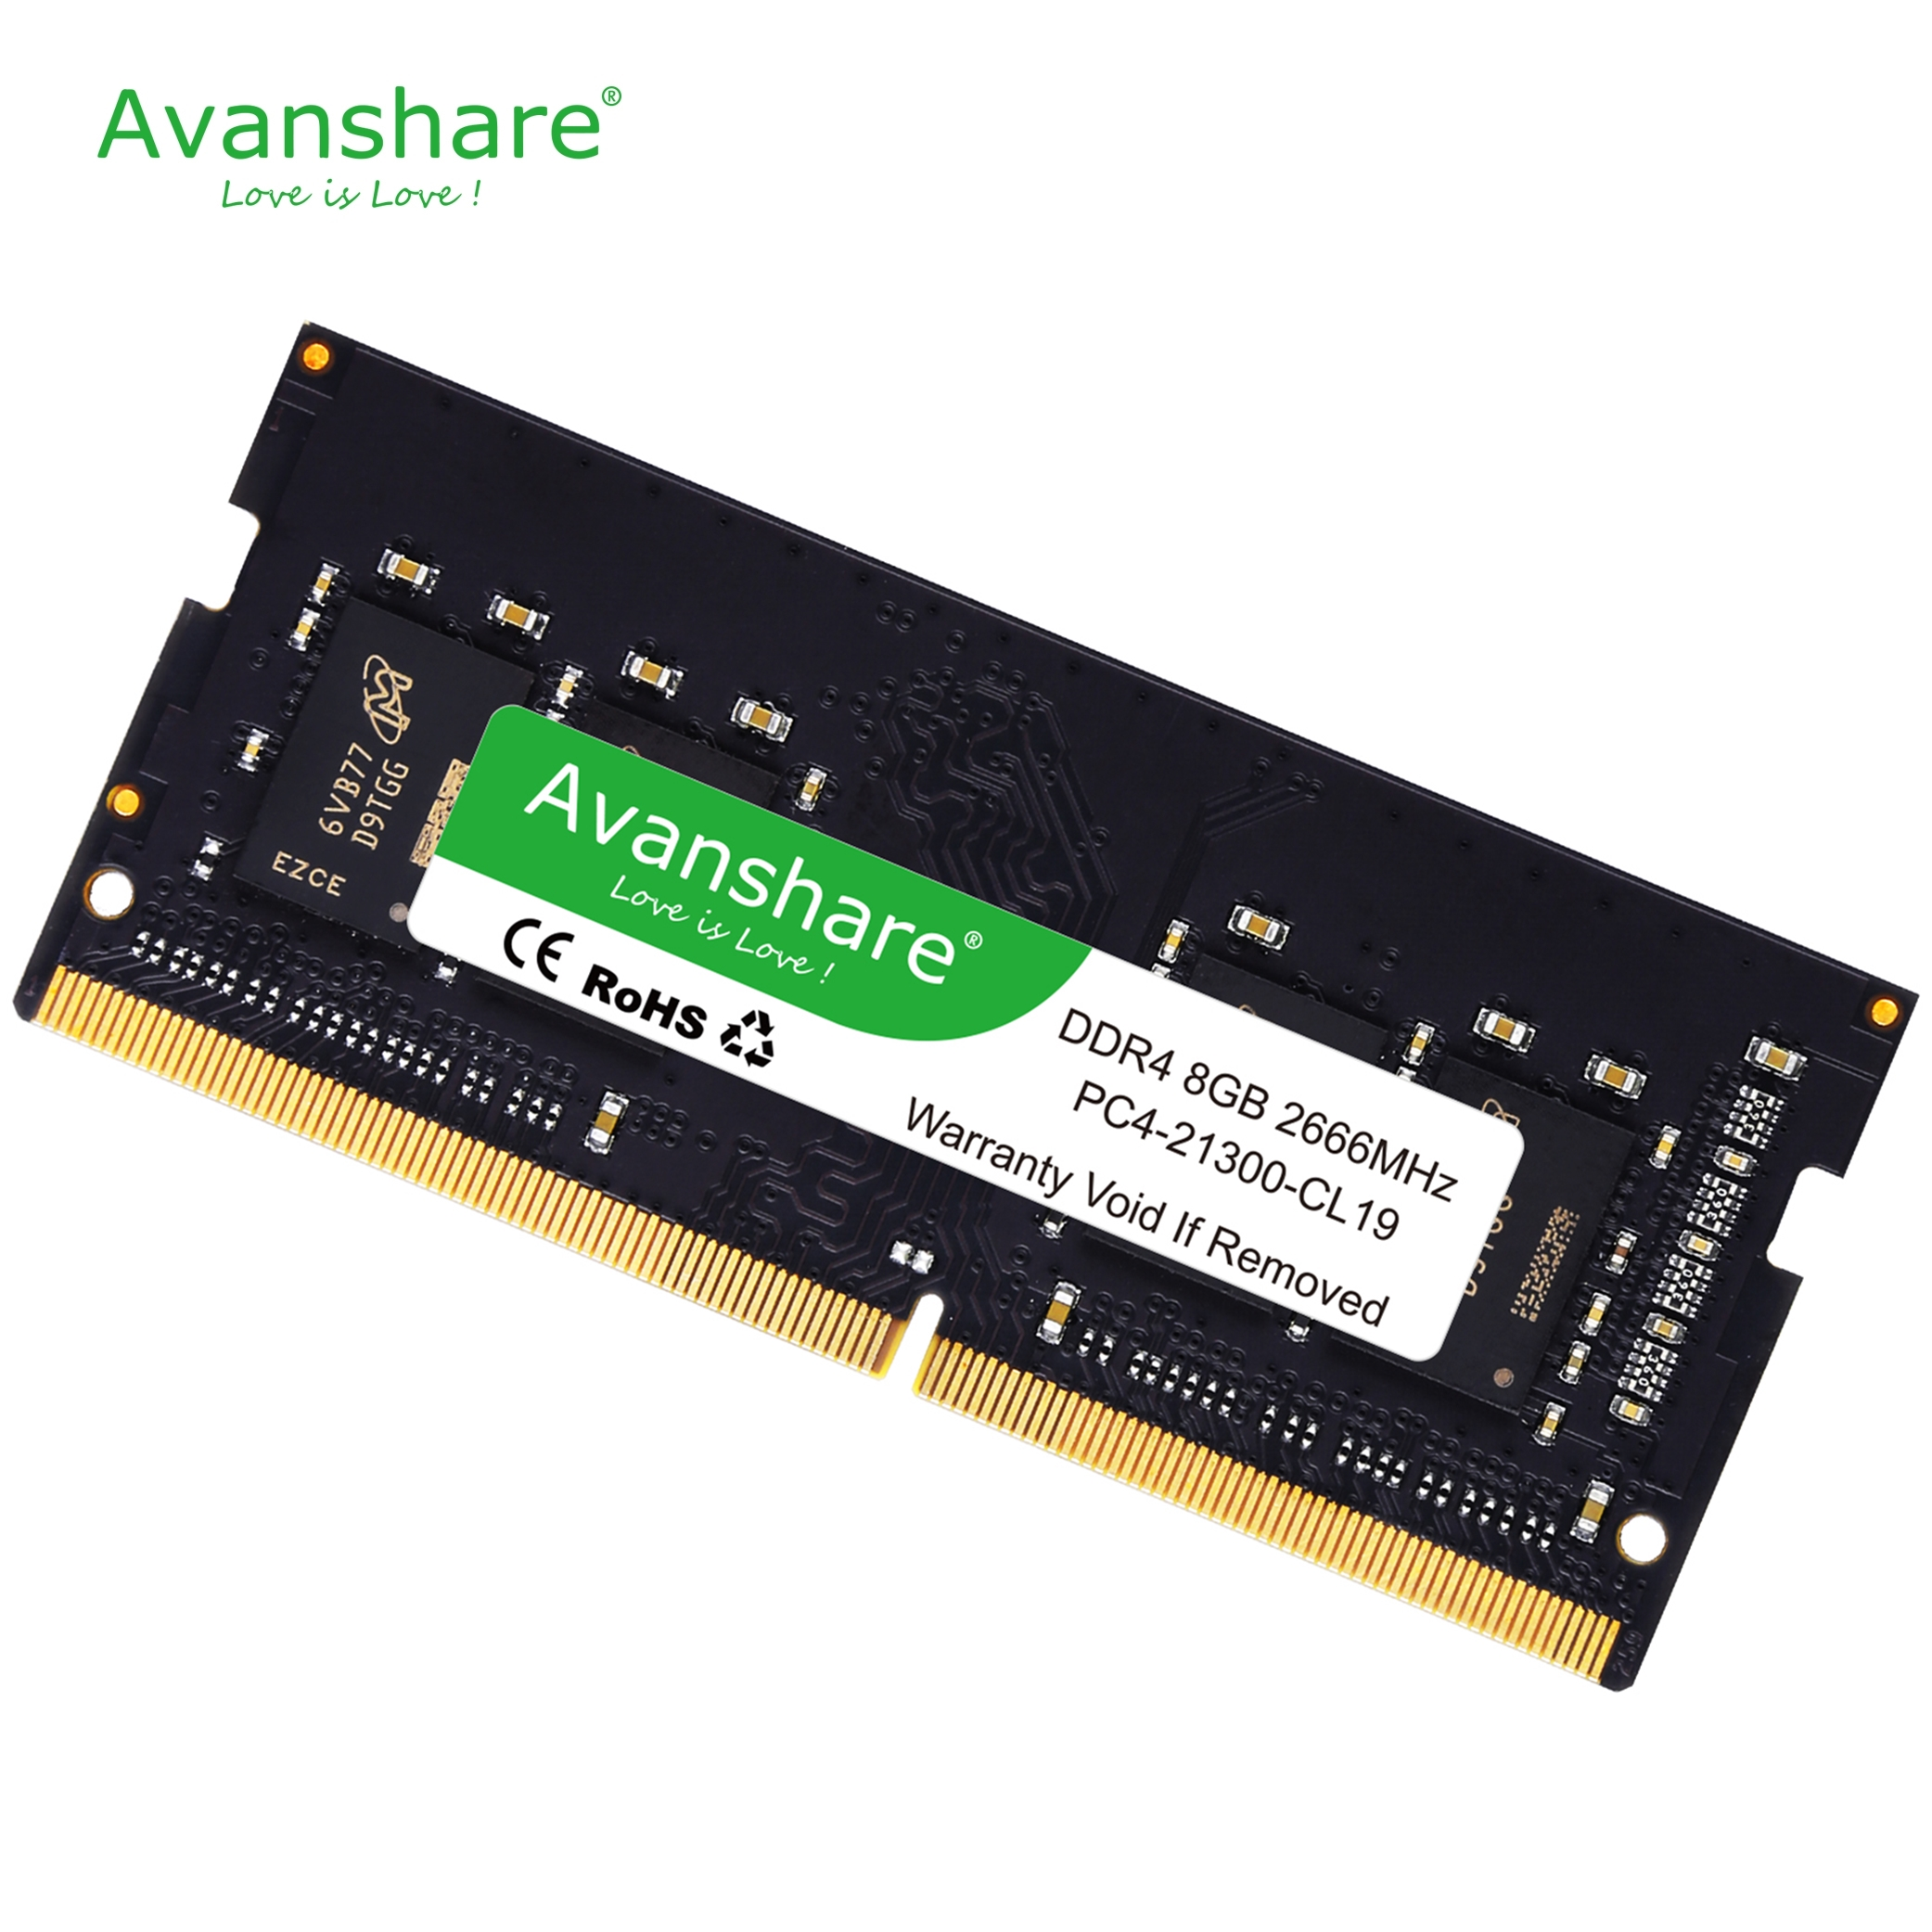 Avanshare <font><b>memoria</b></font> ram <font><b>ddr4</b></font> 4GB <font><b>8gb</b></font> 16GB 2666MHz 2400MHz RAM for Laptop <font><b>Notebook</b></font> <font><b>Memoria</b></font> Ram <font><b>DDR4</b></font> free shipping by Ali express image